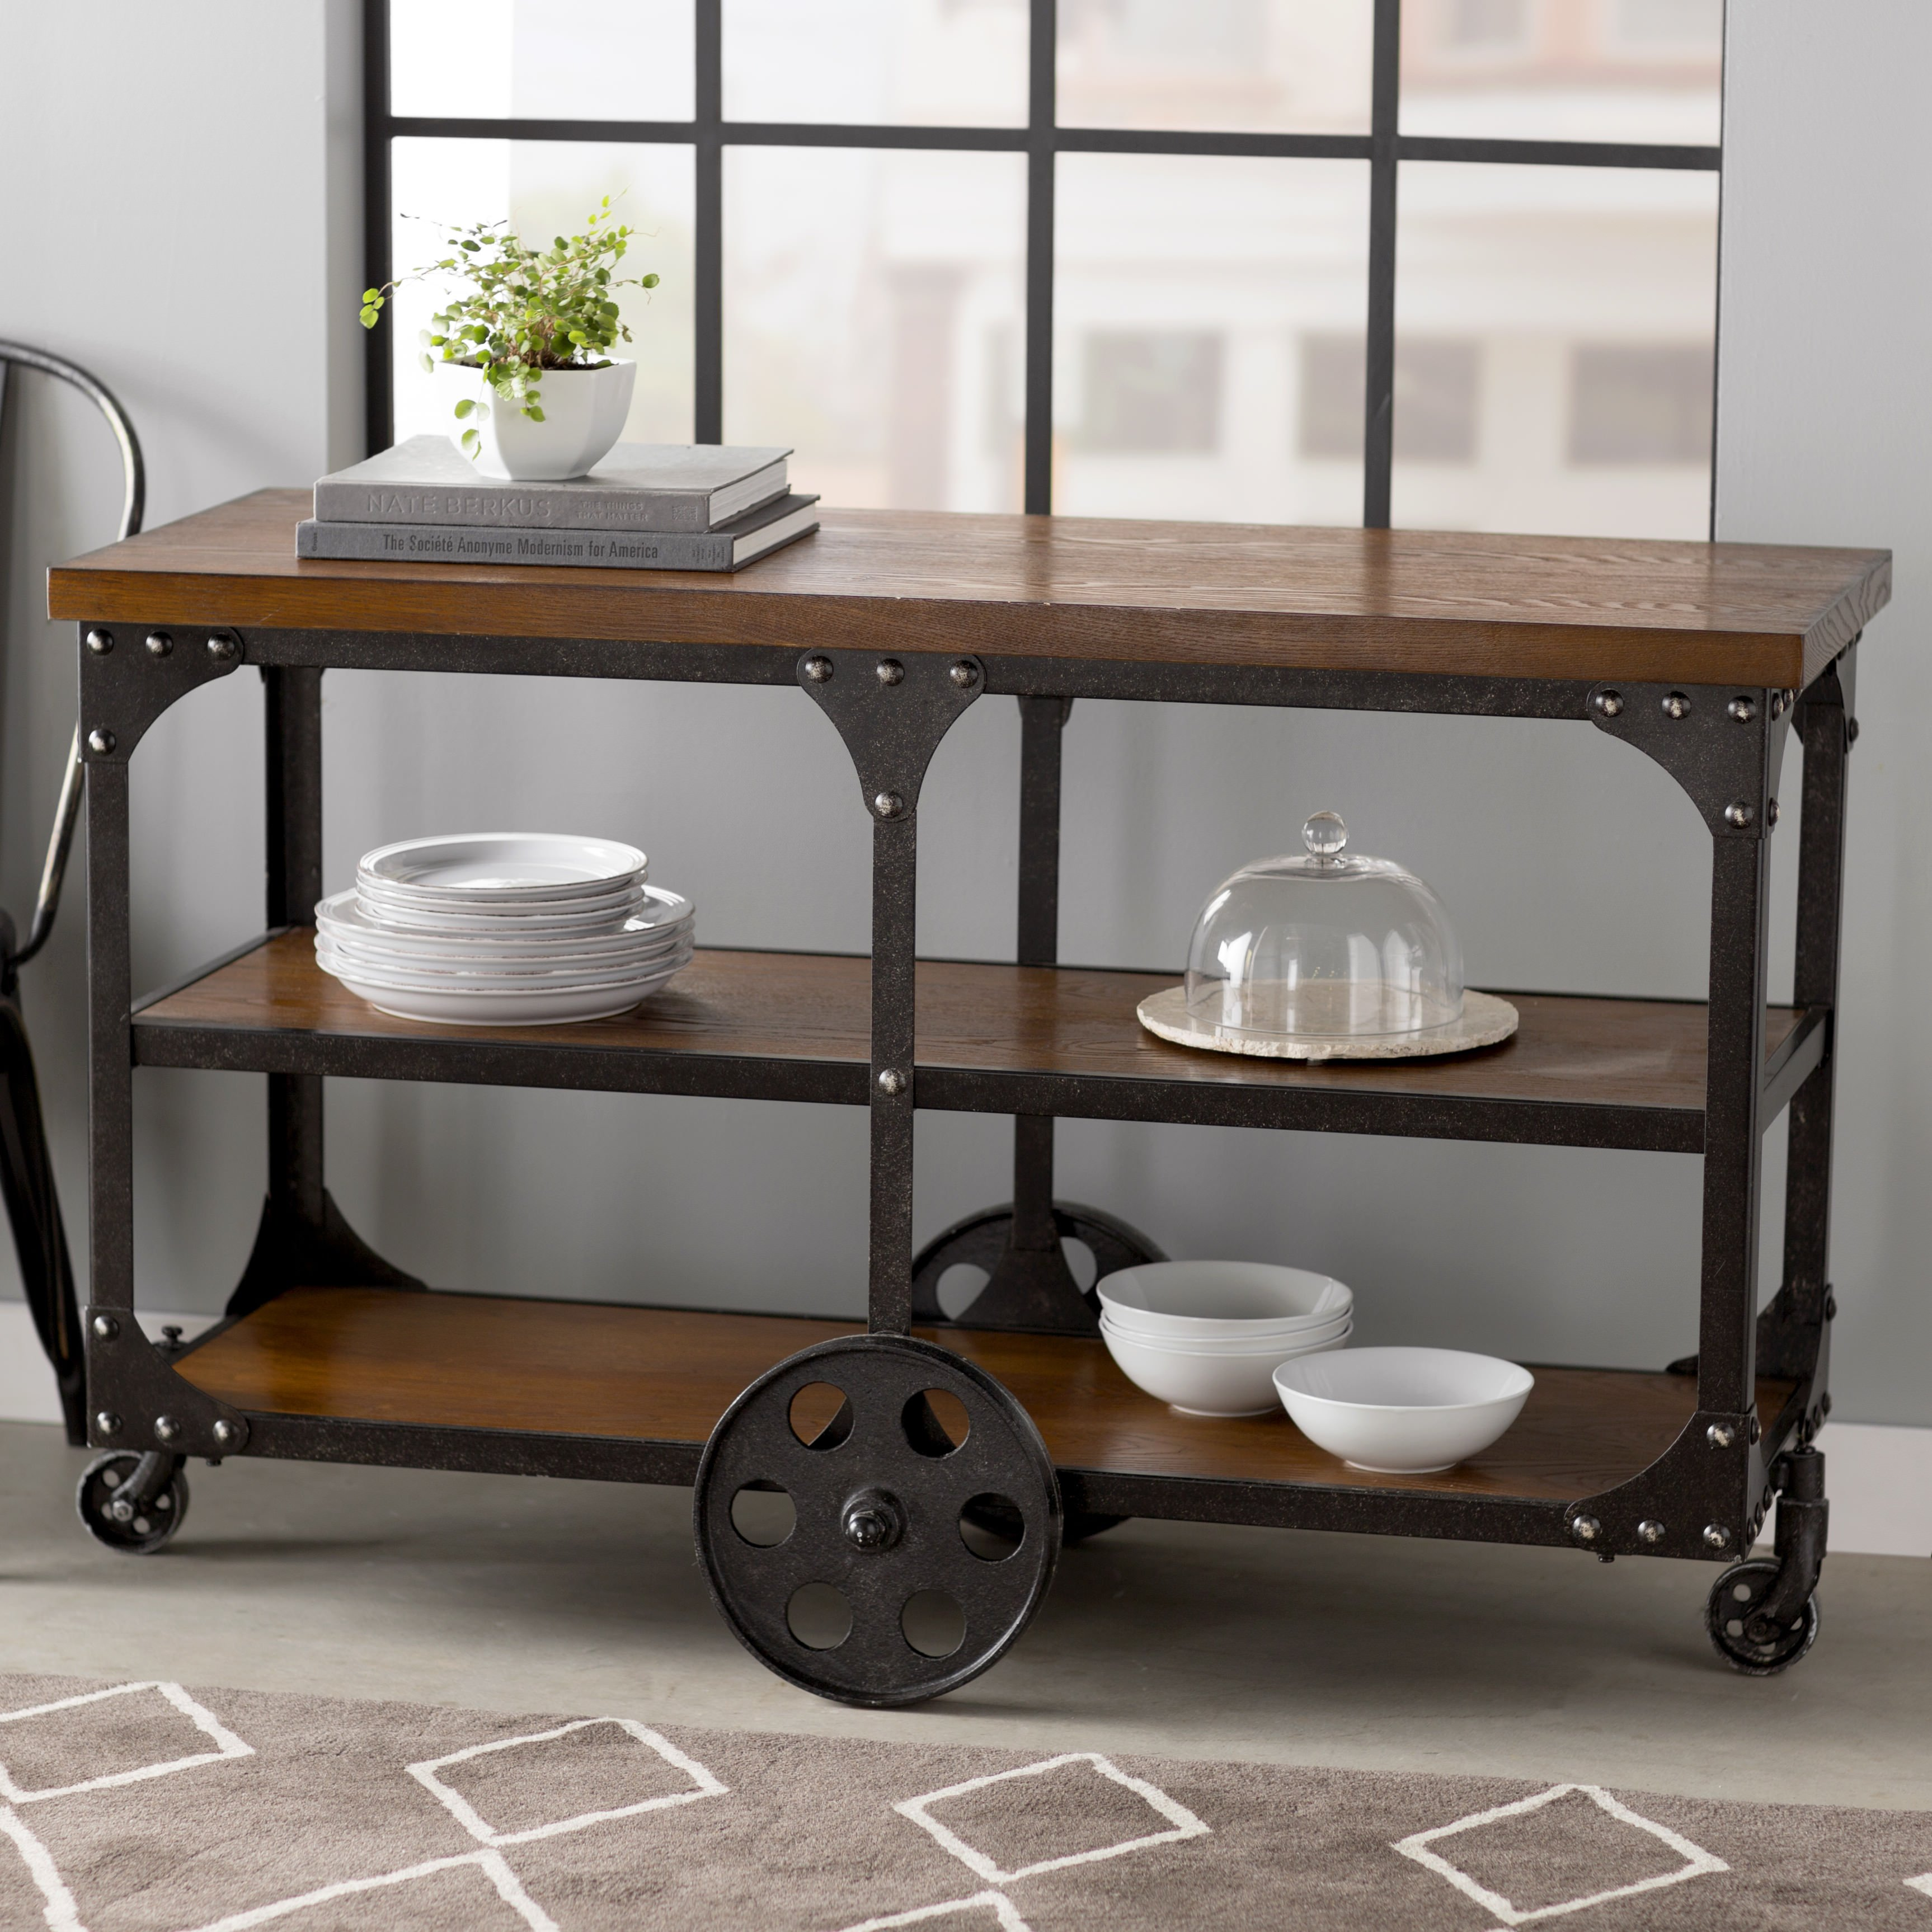 Entryway table on wheels